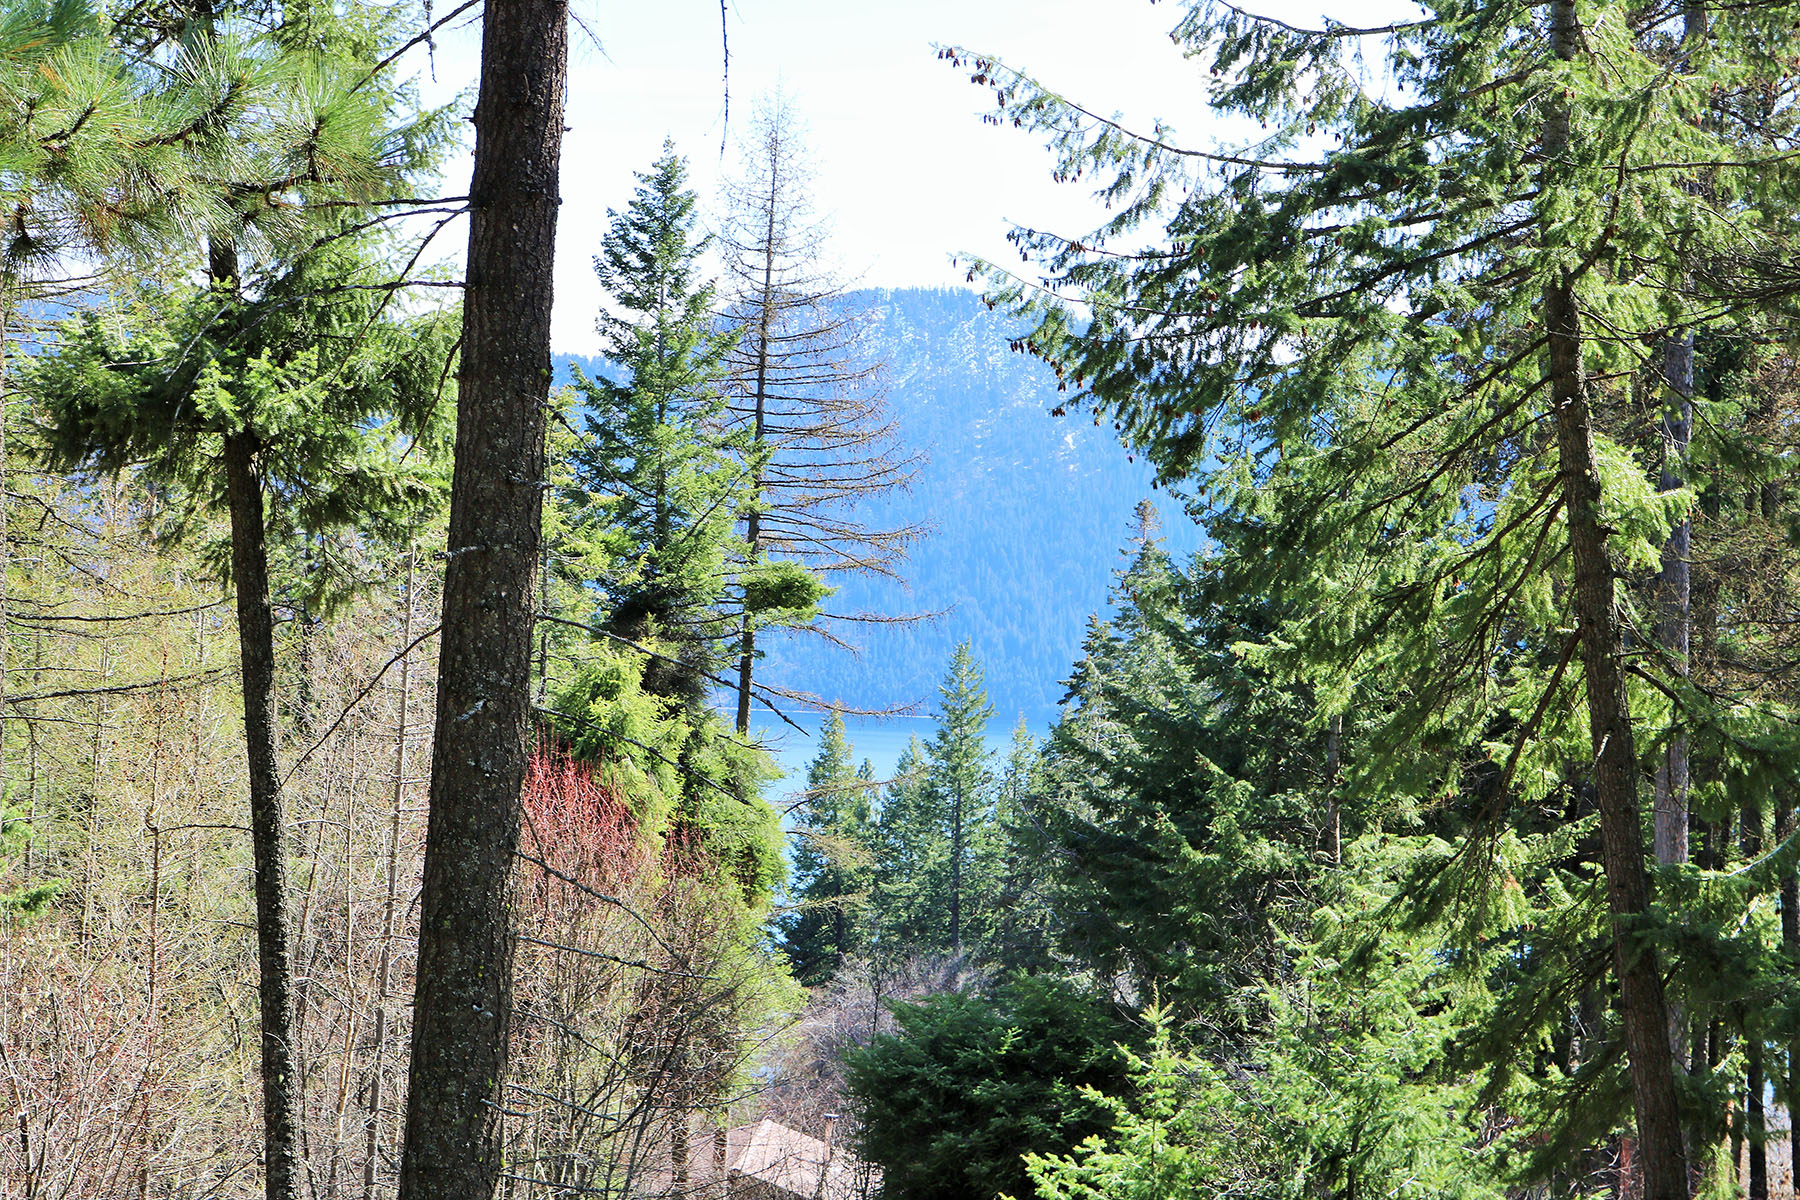 Terreno per Vendita alle ore A view of Lake Pend Oreille on this 0.6 acre property NNA N Terrace Dr 23A Bayview, Idaho, 83803 Stati Uniti